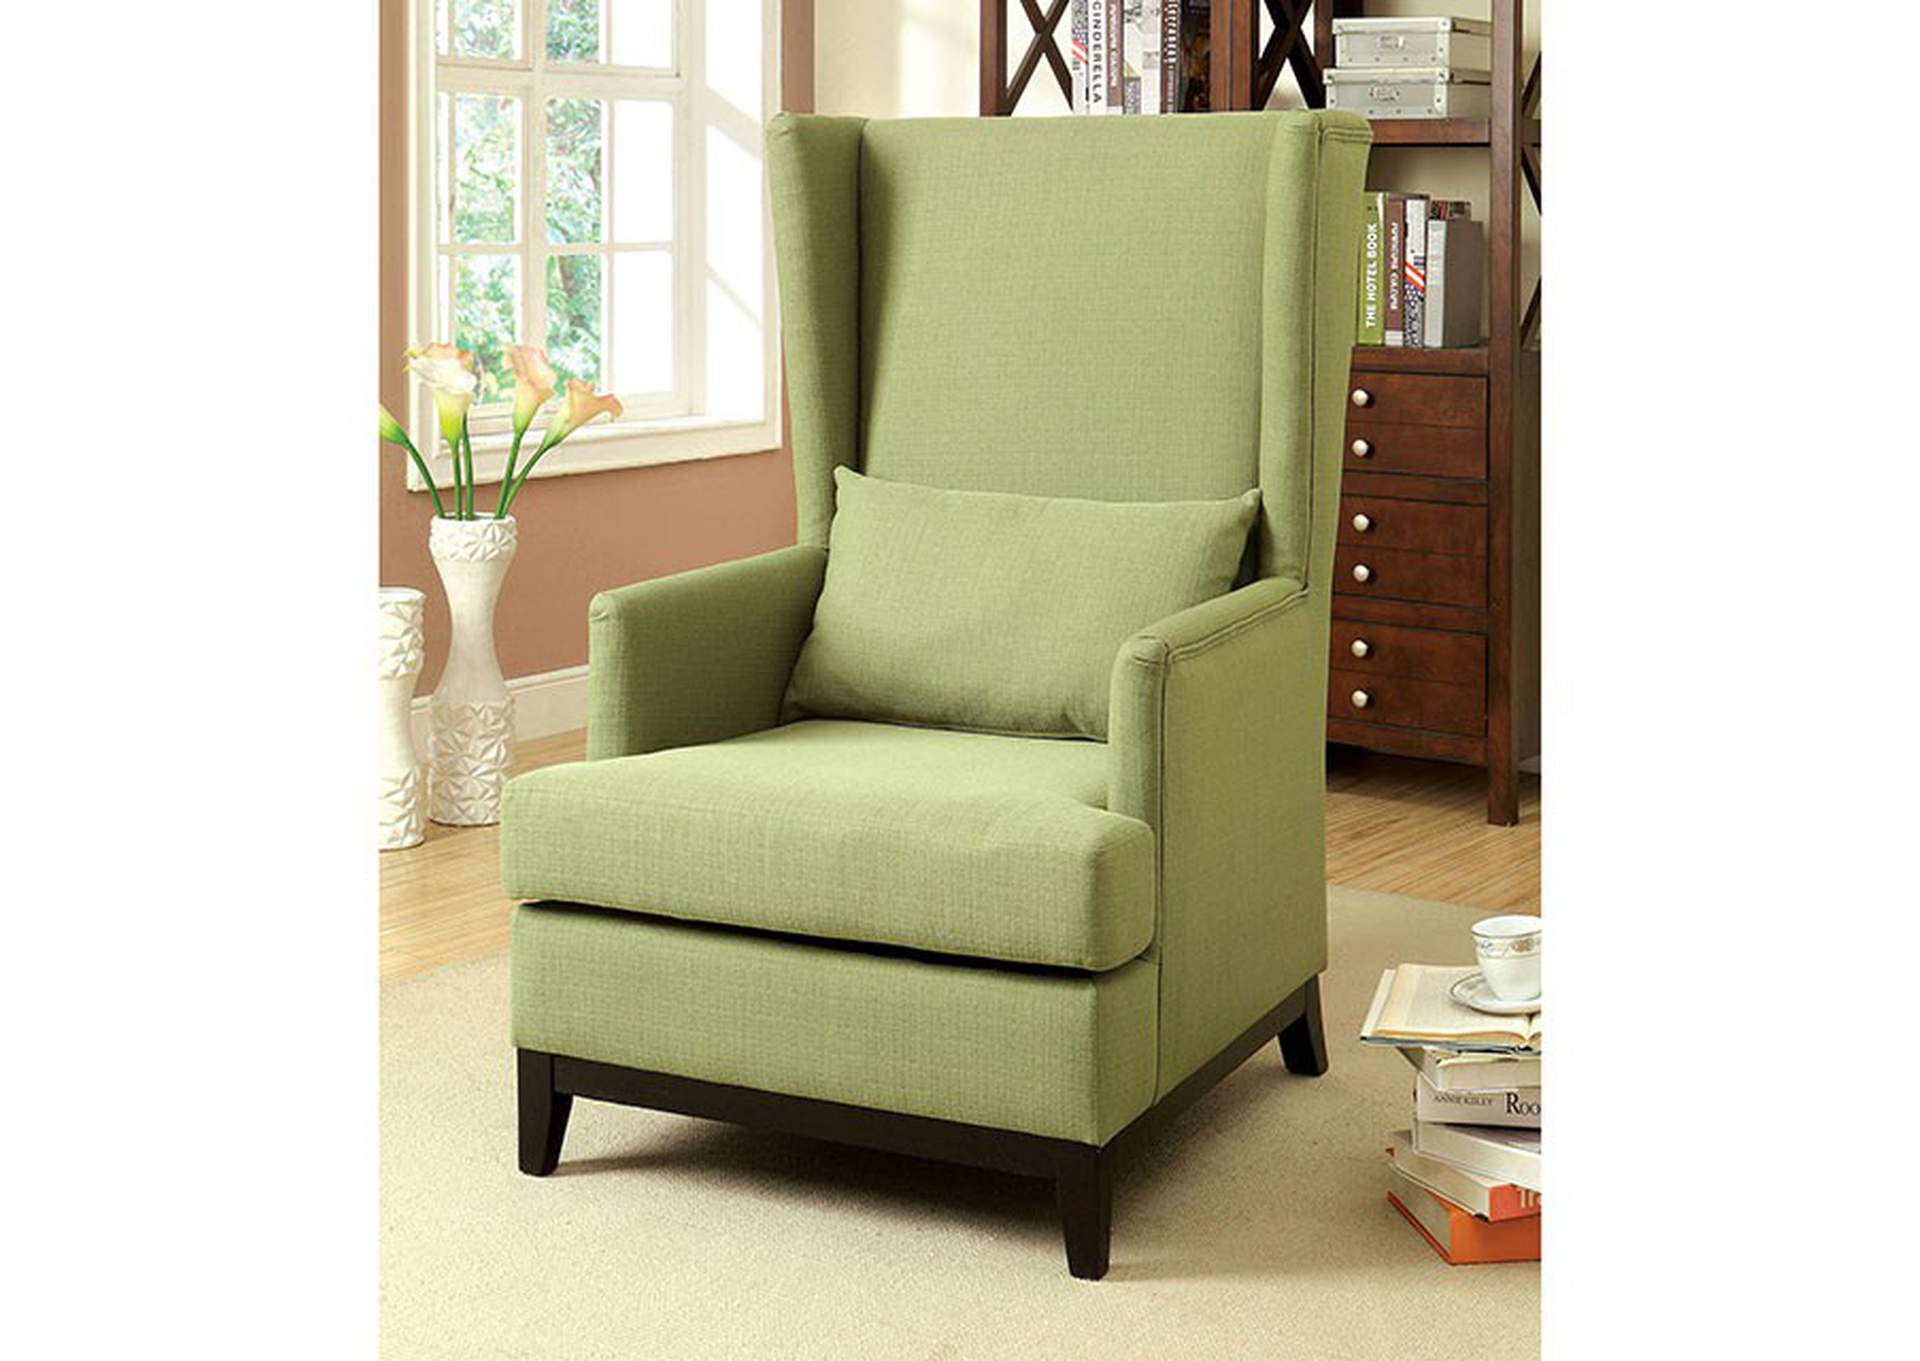 Stafa Accent Chair,Furniture of America